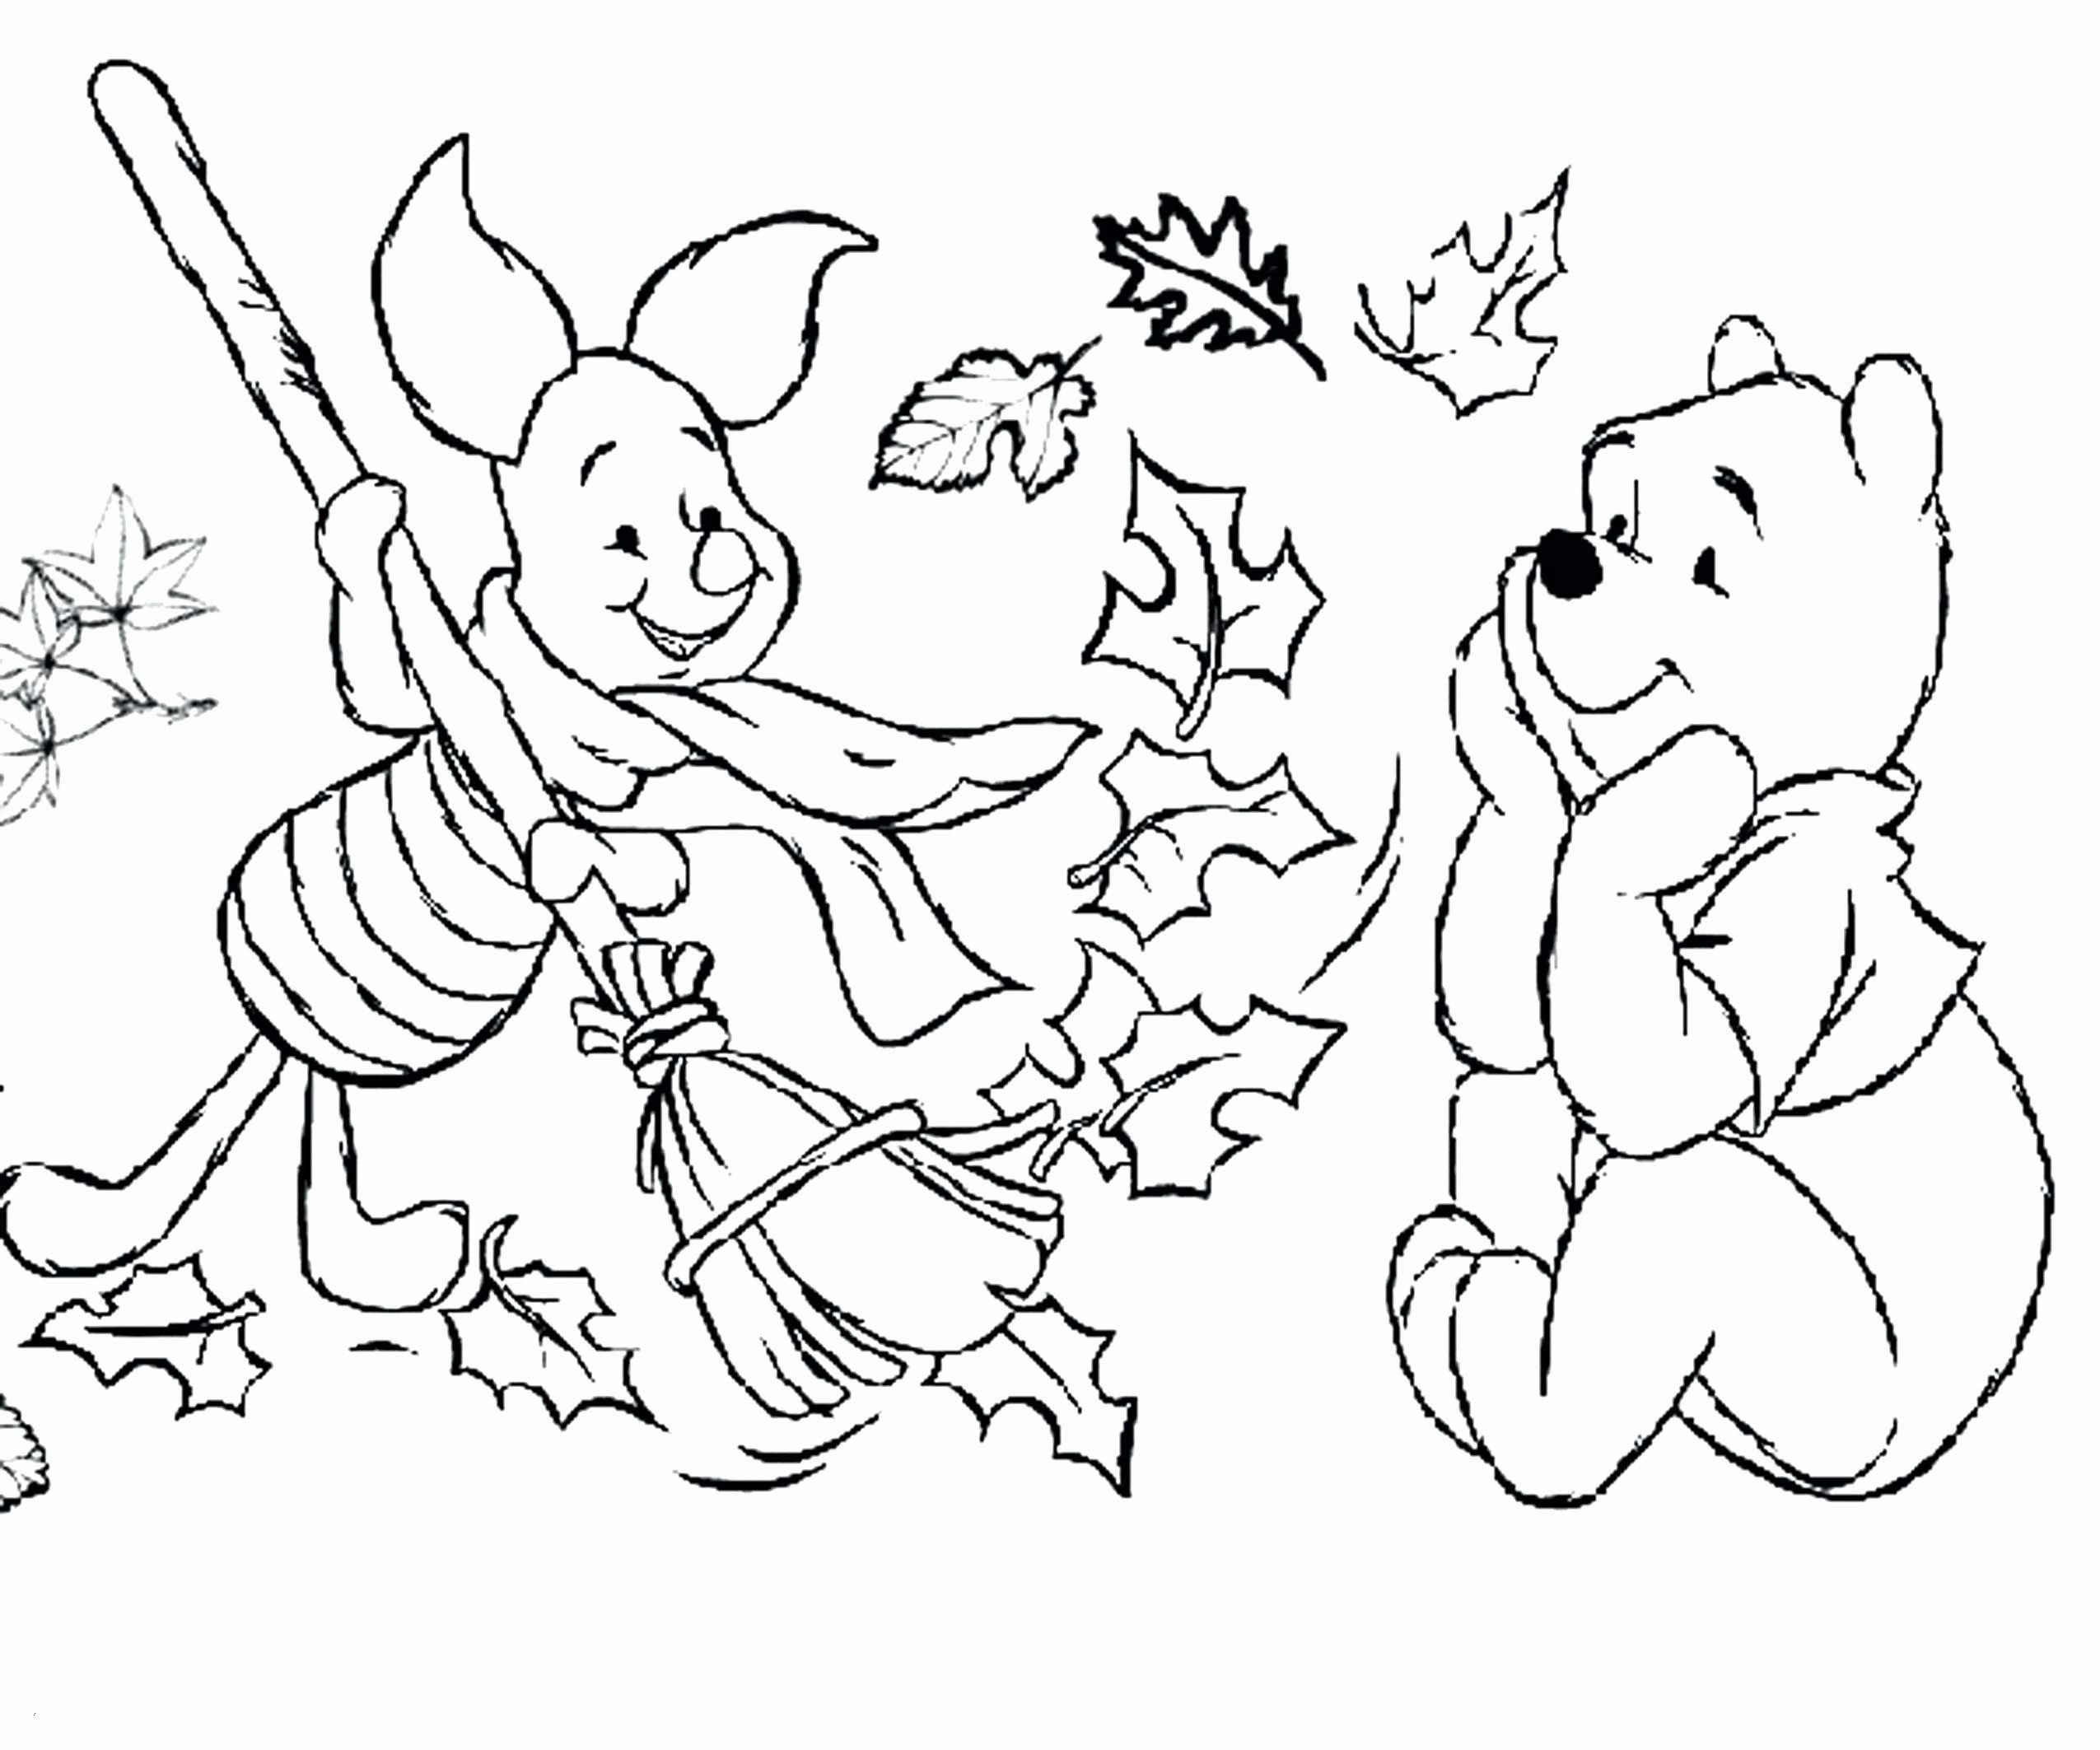 Ausmalbilder Fantasie Tiere Neu Friendship Coloring Pages Unique 44 Lego Friends Pferde Ausmalbilder Bilder